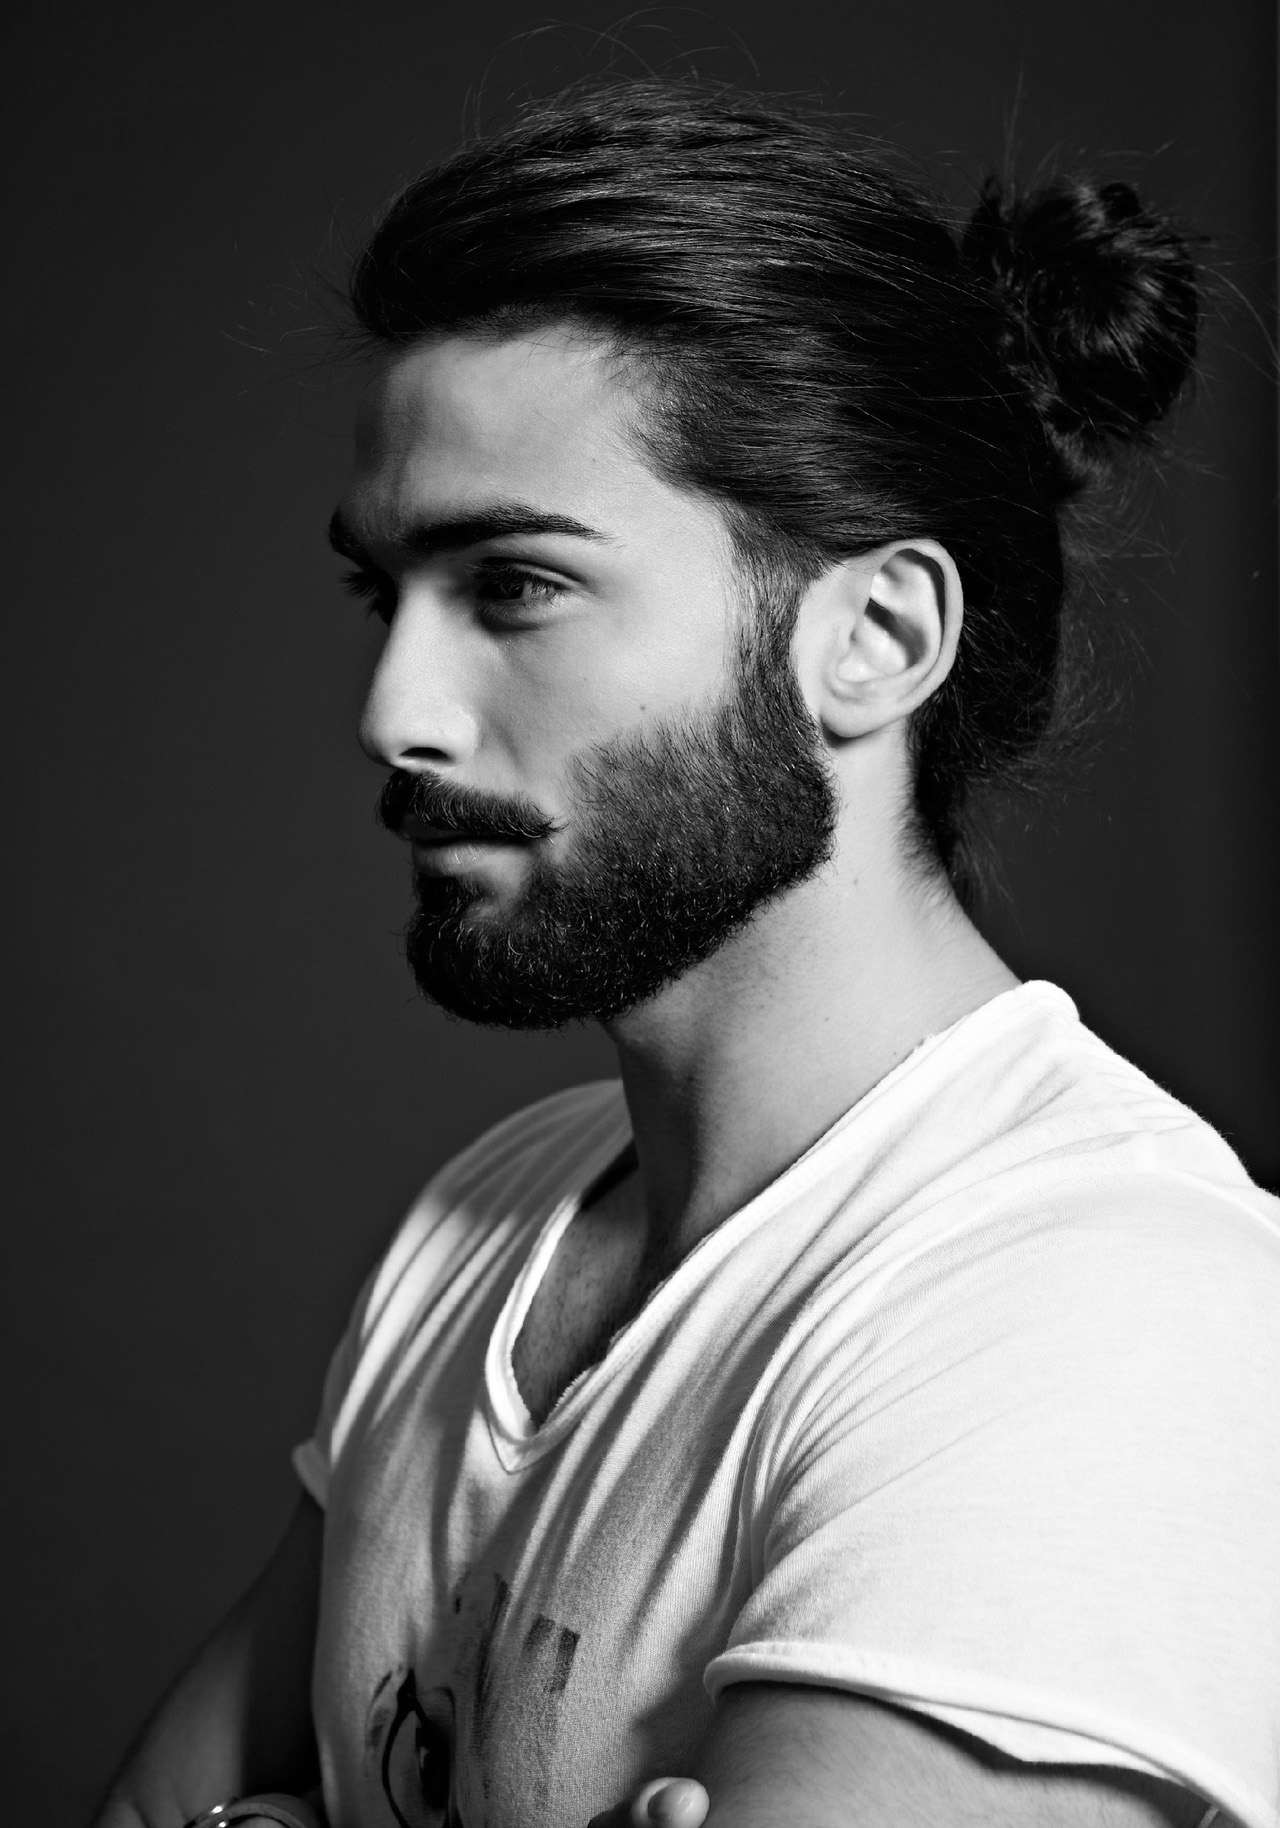 Man Bun Hairstyle Ideas with Beard and Mustache